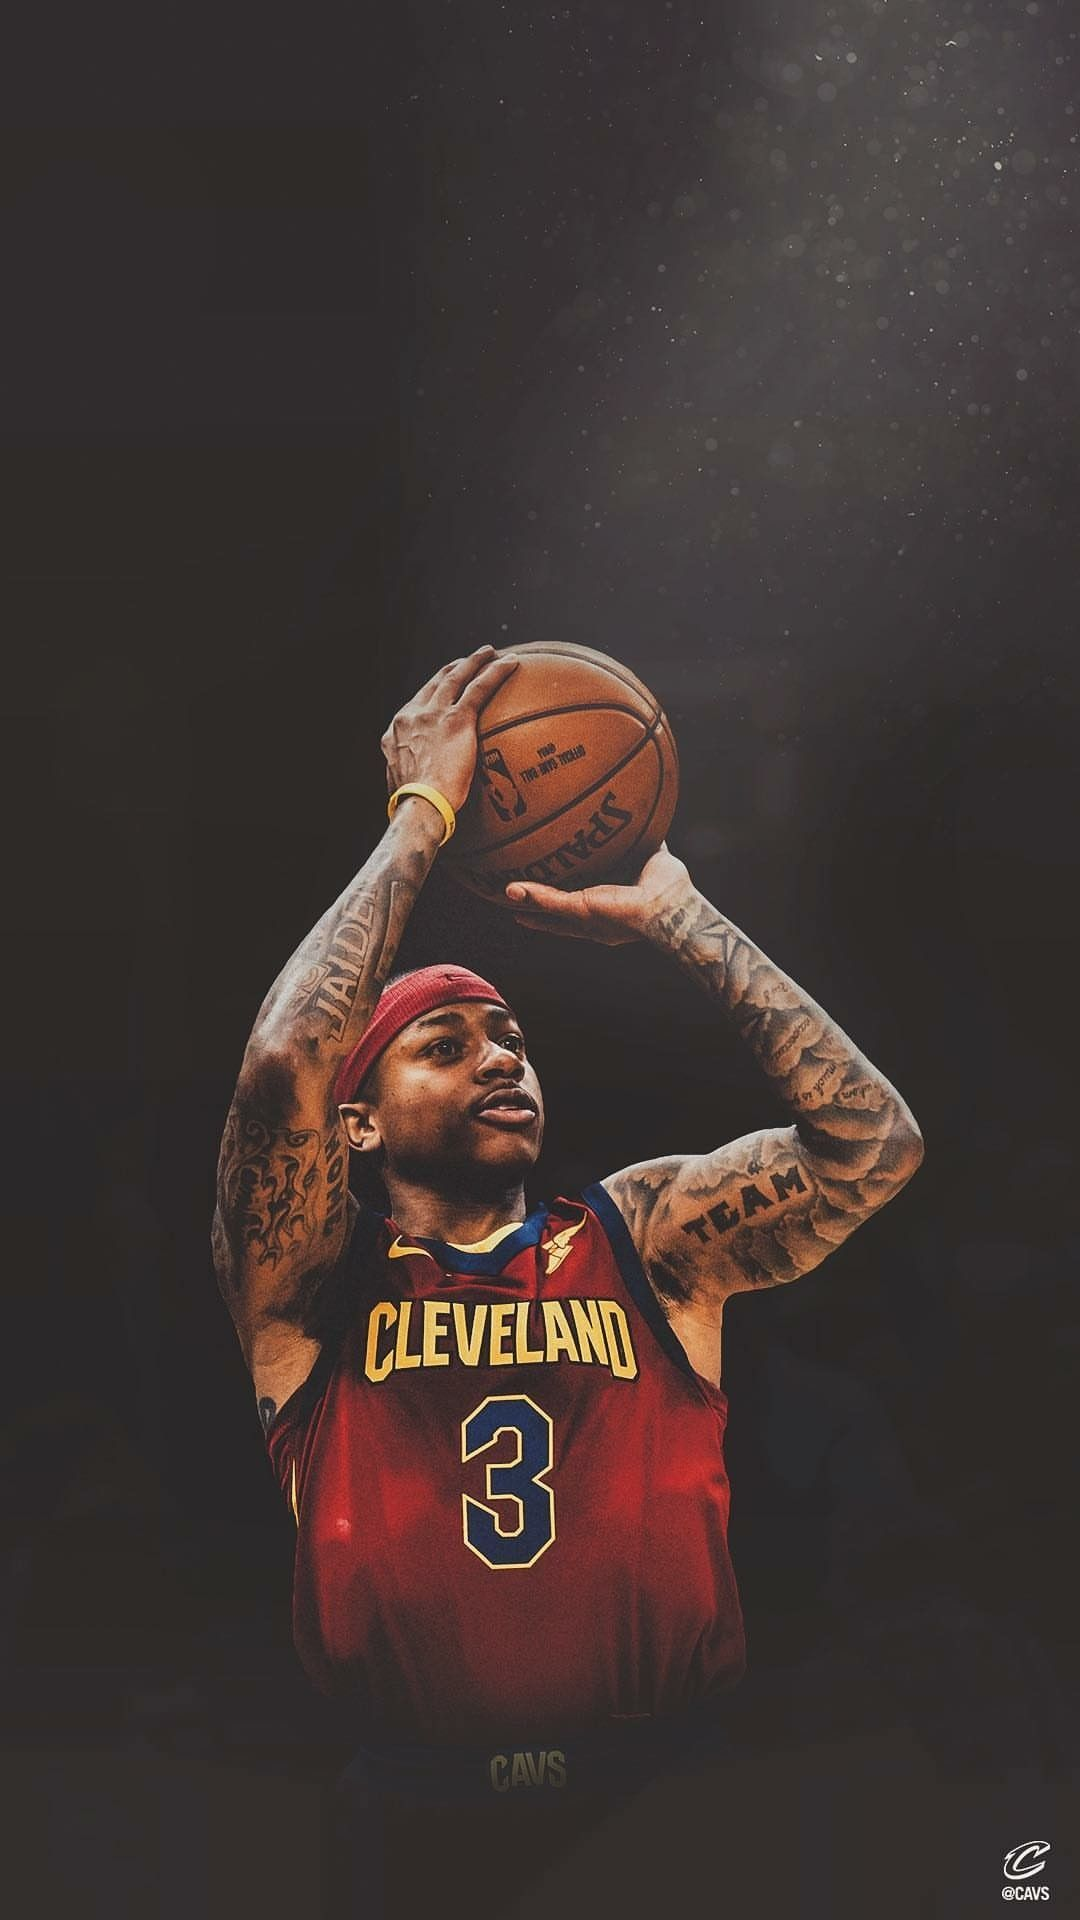 Isaiah Thomas Cleveland Cavaliers WALLPAPER